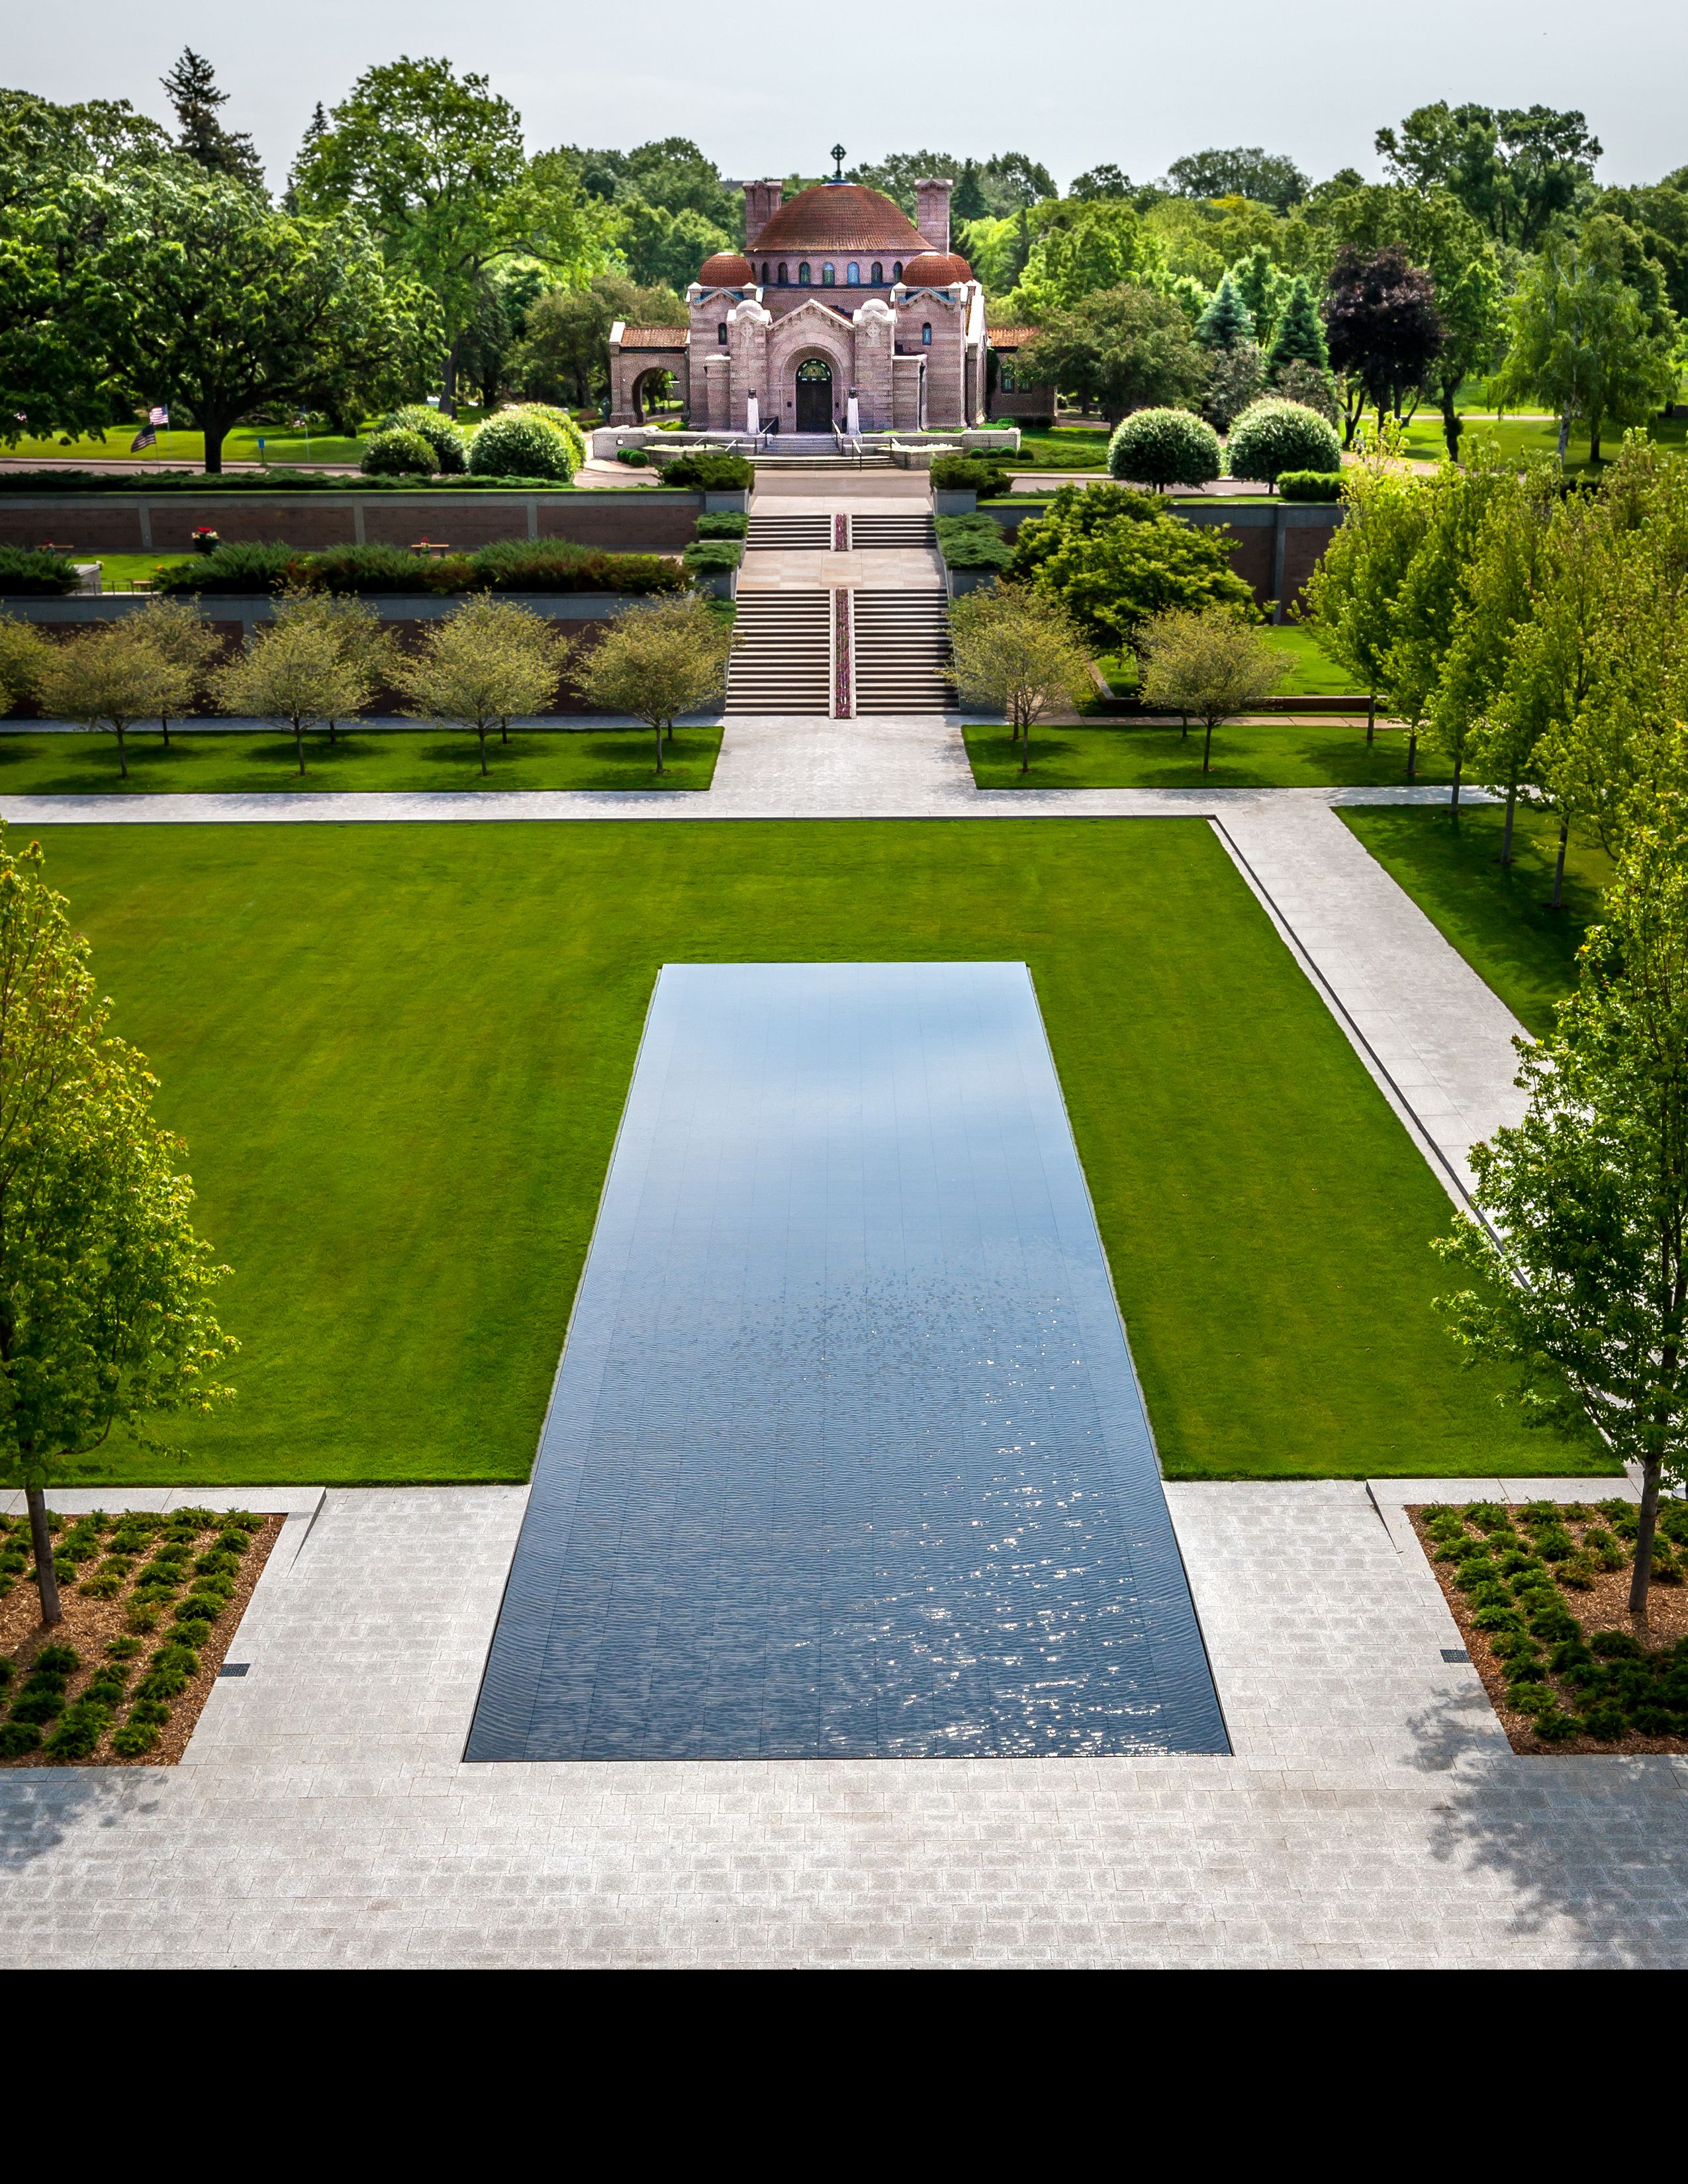 Lakewood cemetery s garden mausoleum by hga architects for Formal landscape design